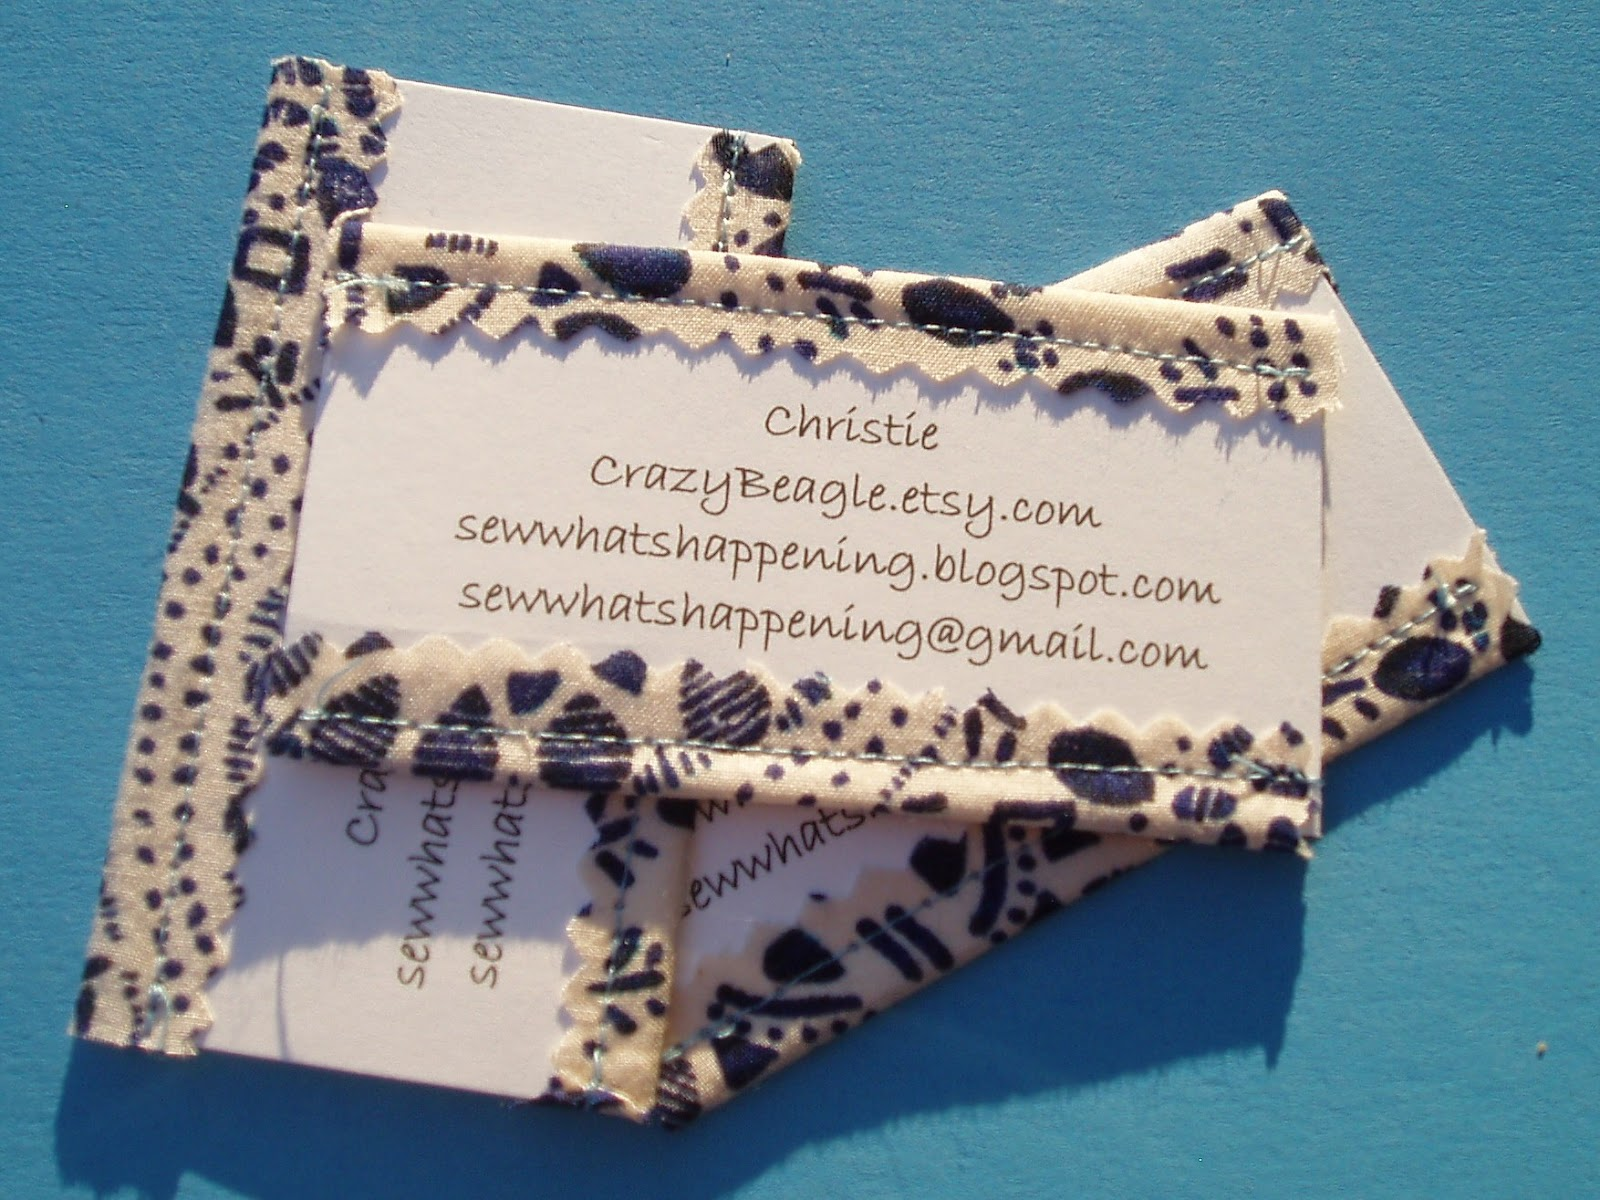 Sew whats happening business cards after making a few cards i decided to order some from vistaprint im anxiously awaiting their arrival in my mailbox im still planning on sewing fabric colourmoves